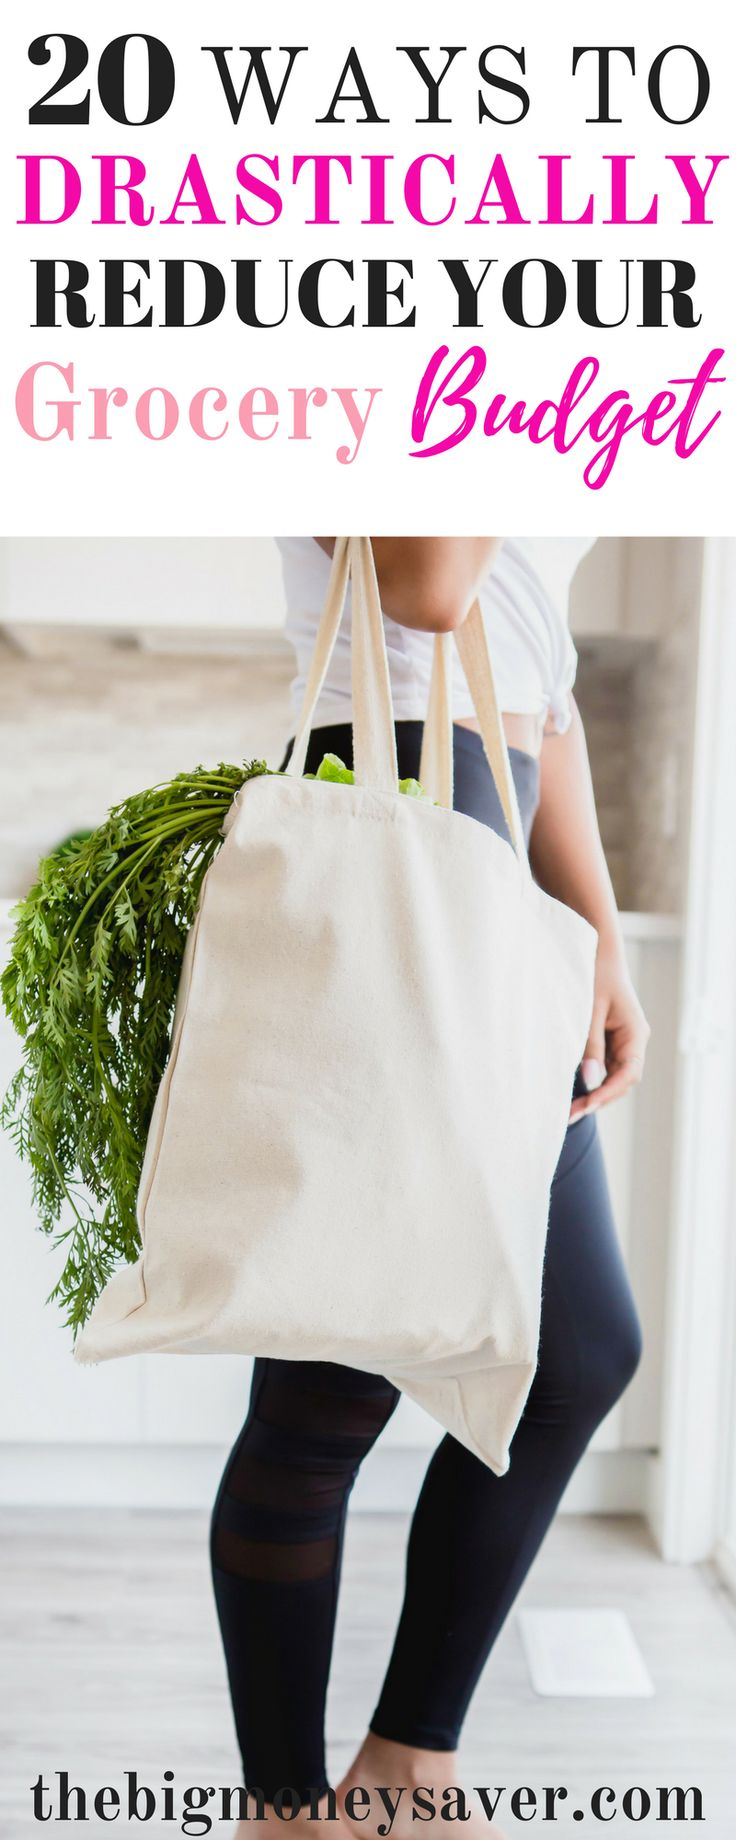 20 WAYS TO DRASTICALLY REDUCE YOUR GROCERY BUDGET- This is great!! If you're having trouble affording groceries, you'll want to read this! She teaches you how to save money on groceries with 20 ways to drastically reduce your grocery budget! How to save money on groceries. Spending less on groceries. Groceries on a budget. via @thebigmoneysaver